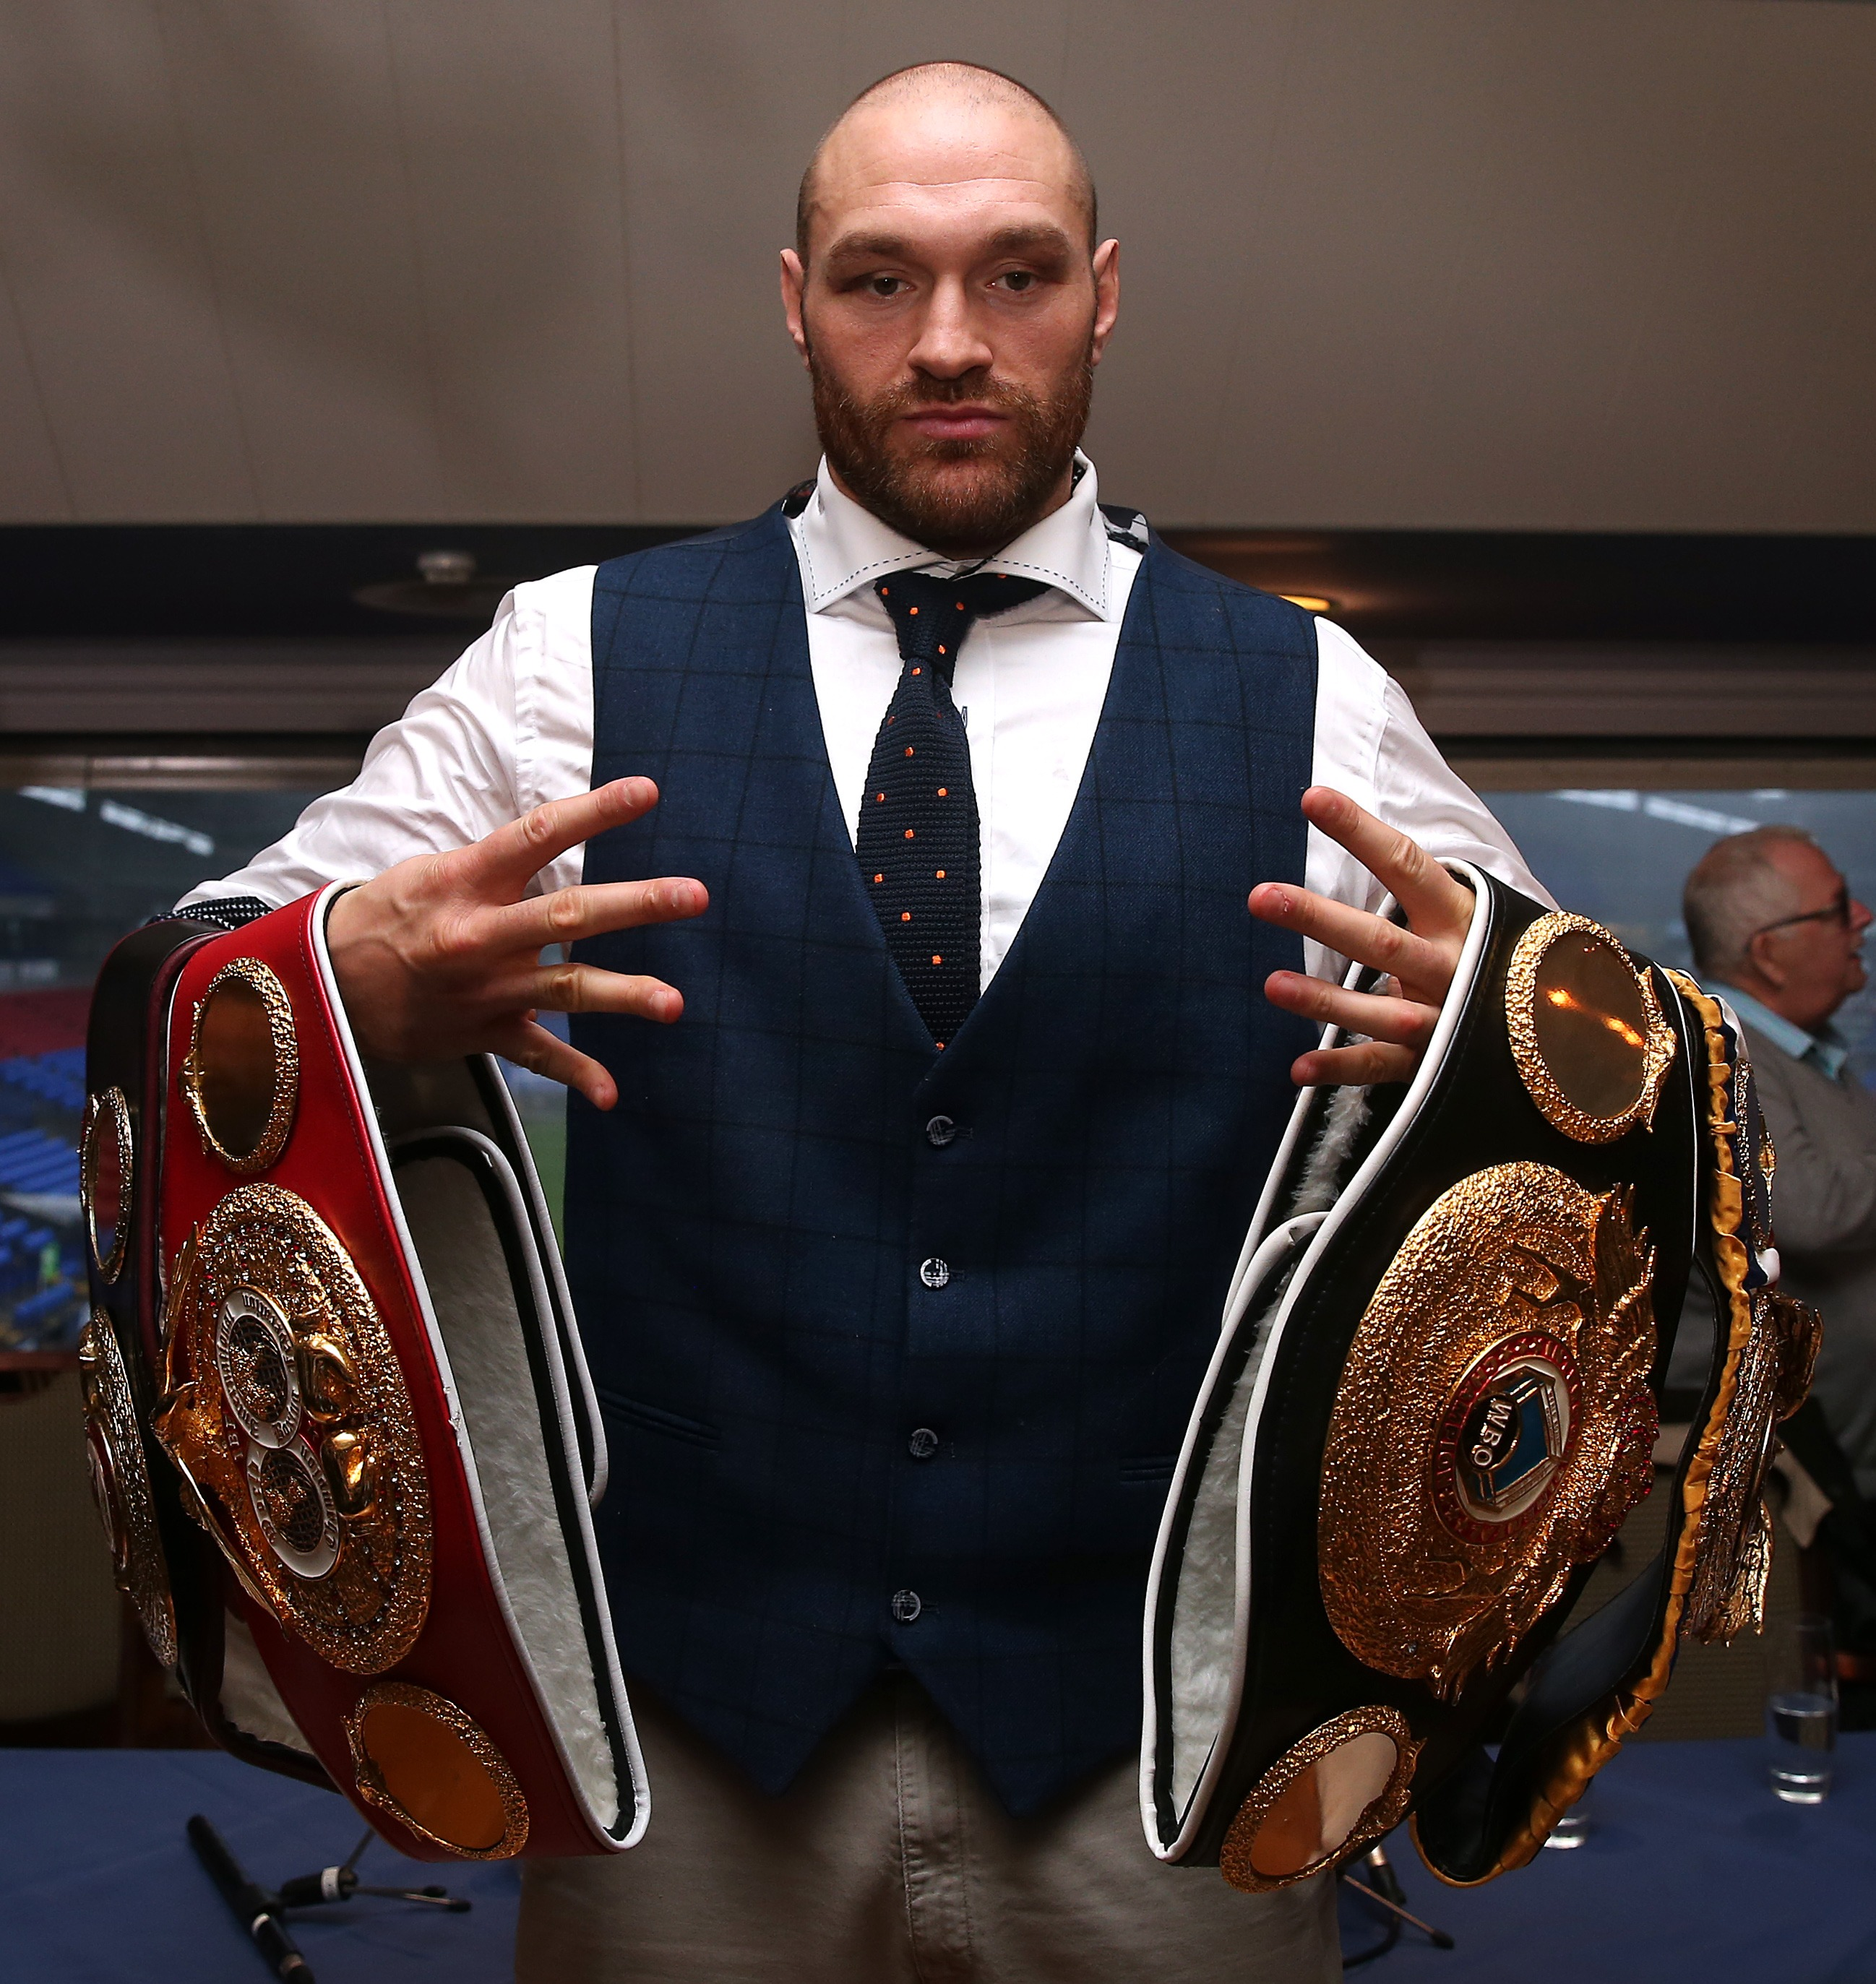 BOLTON, ENGLAND - NOVEMBER 30: Tyson Fury poses with his belts following a press conference at the Macron Stadium on November 30, 2015 in Bolton, England. (Photo by Chris Brunskill/Getty Images)